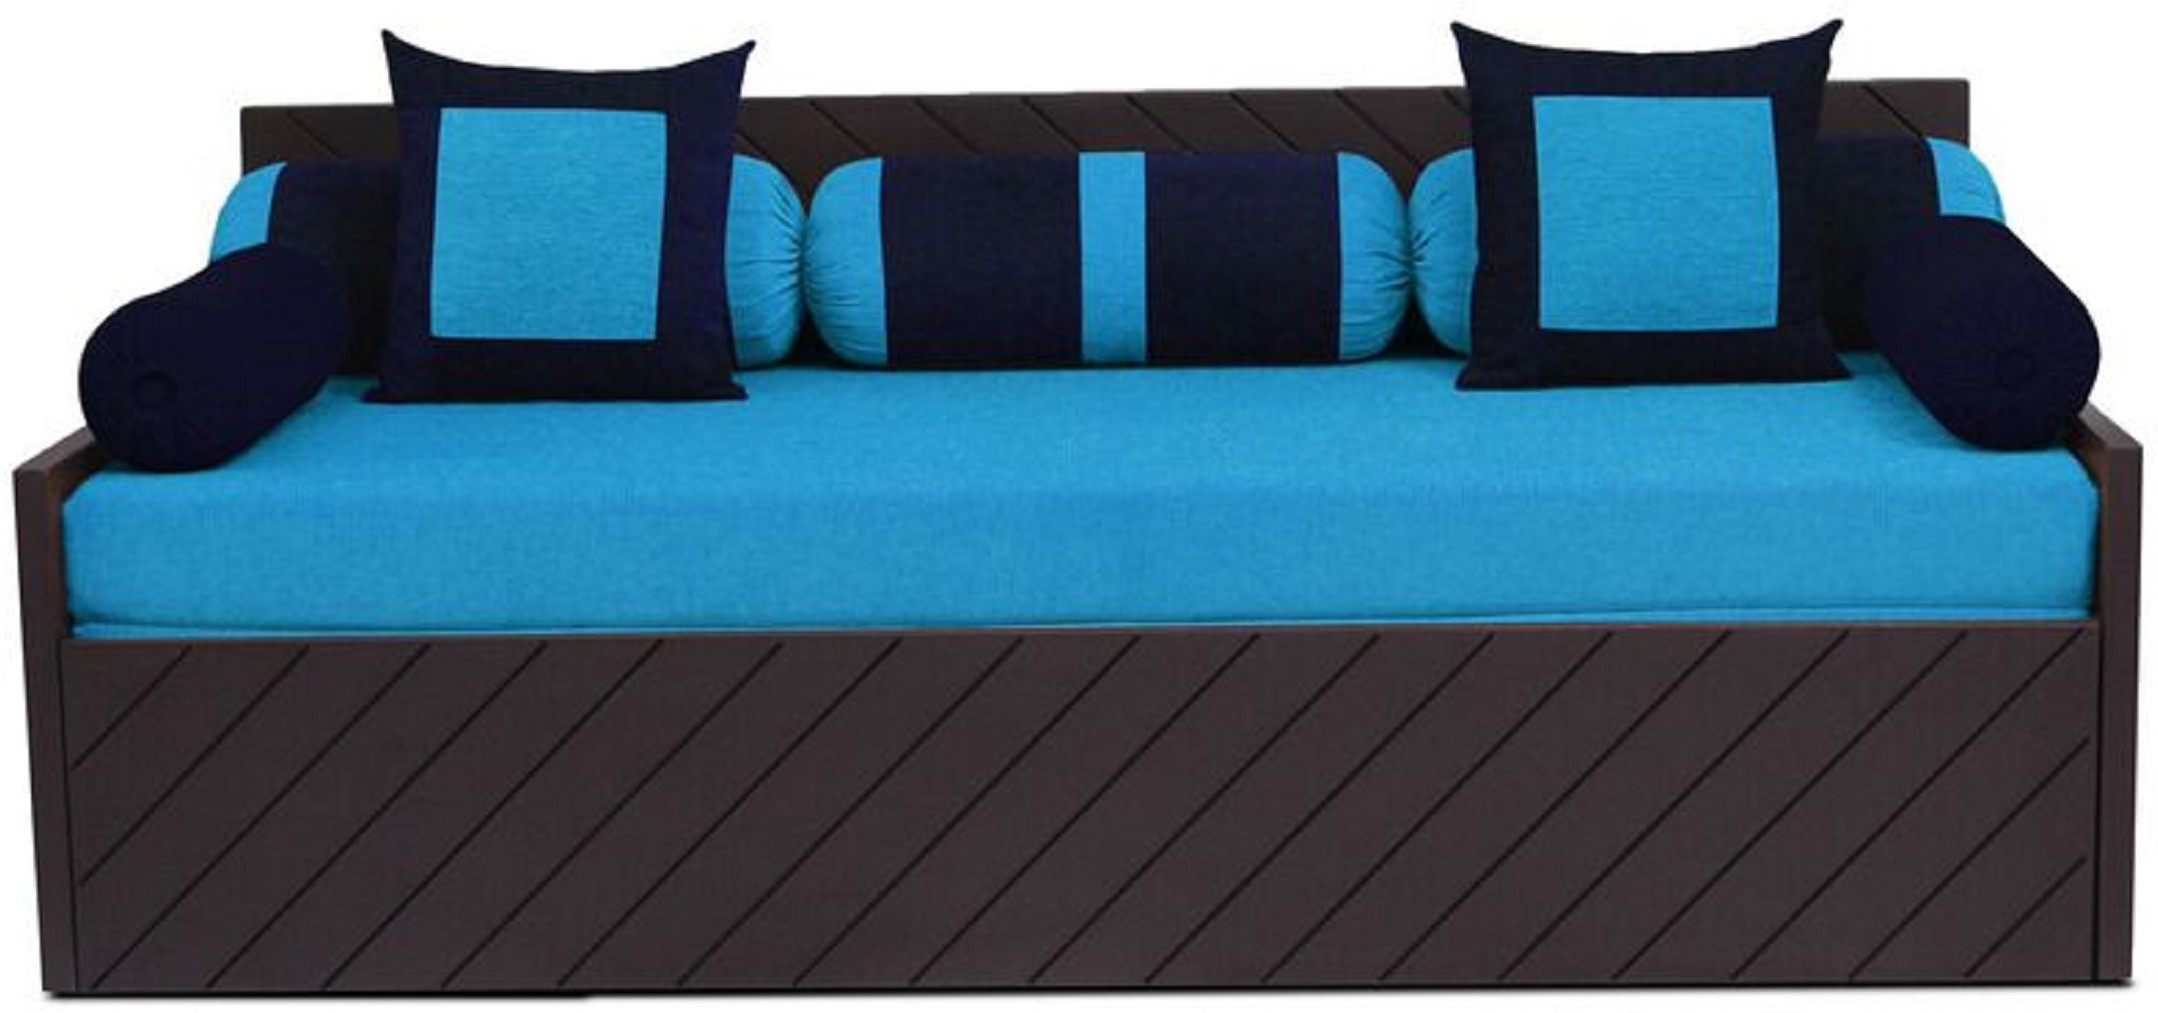 Auspicious Home Kaiden (2 Pillows, 5 Bolsters) Double Fabric Sofa Bed(Finish Color - Blue Mechanism Type - Pull Out)